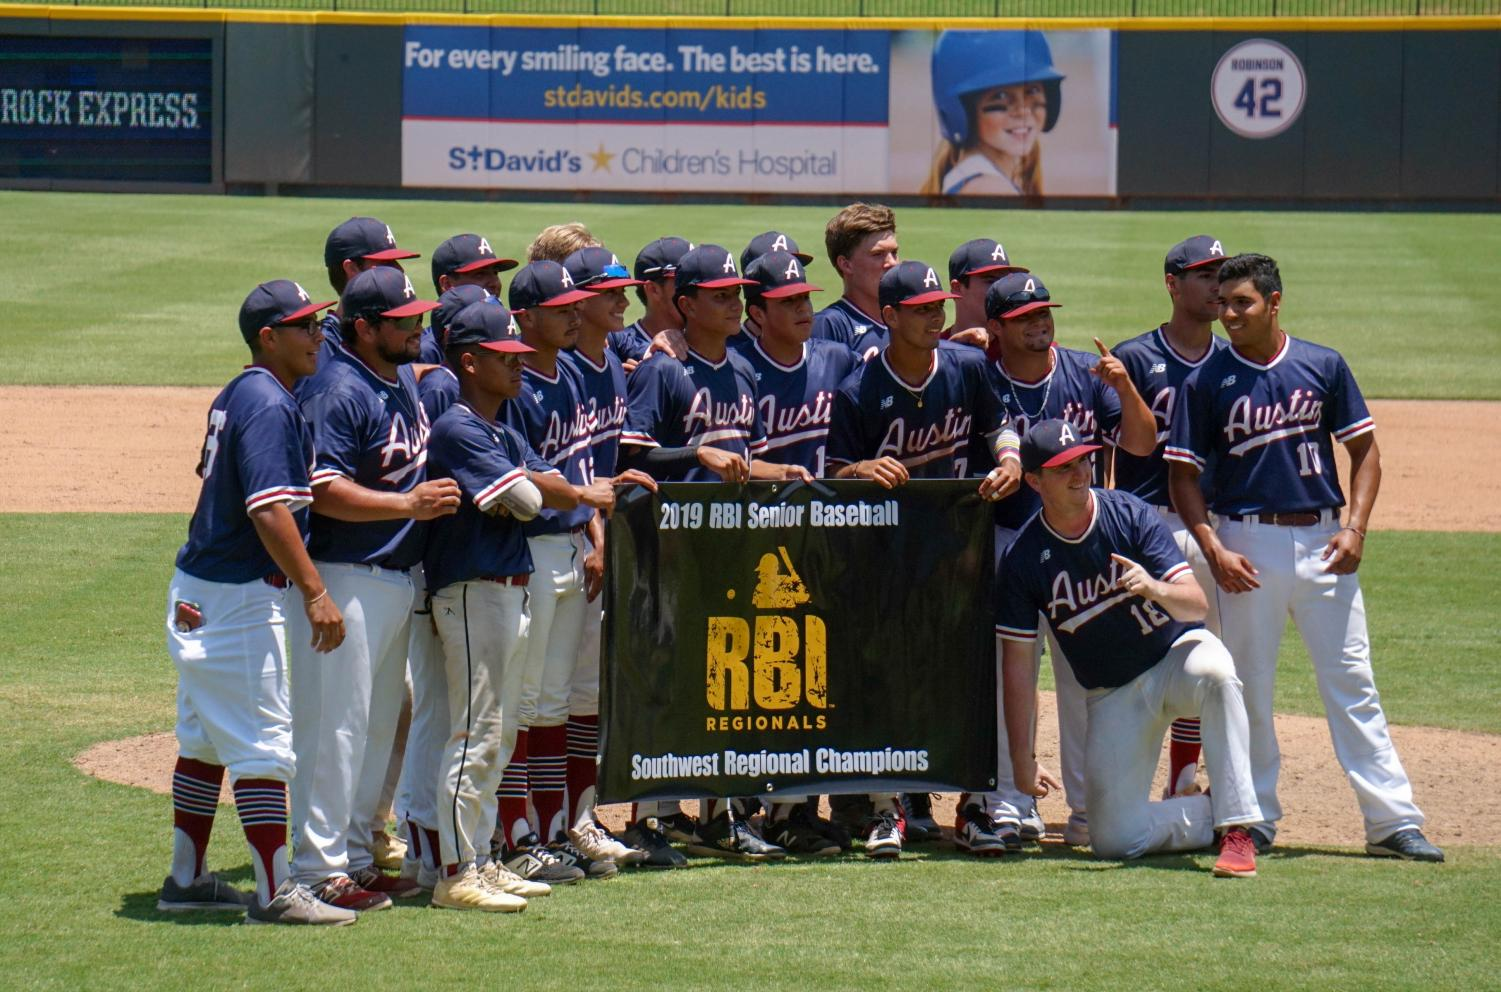 After defeating Astros RBI 8-0 to win the RBI Southwest Regional title and earn a berth in the MLB RBI World Series at Vero Beach, Fla., Aug. 4-9, RBI Austin players and coaches gathered for a victory photo on the Dell Diamond pitcher's mound.